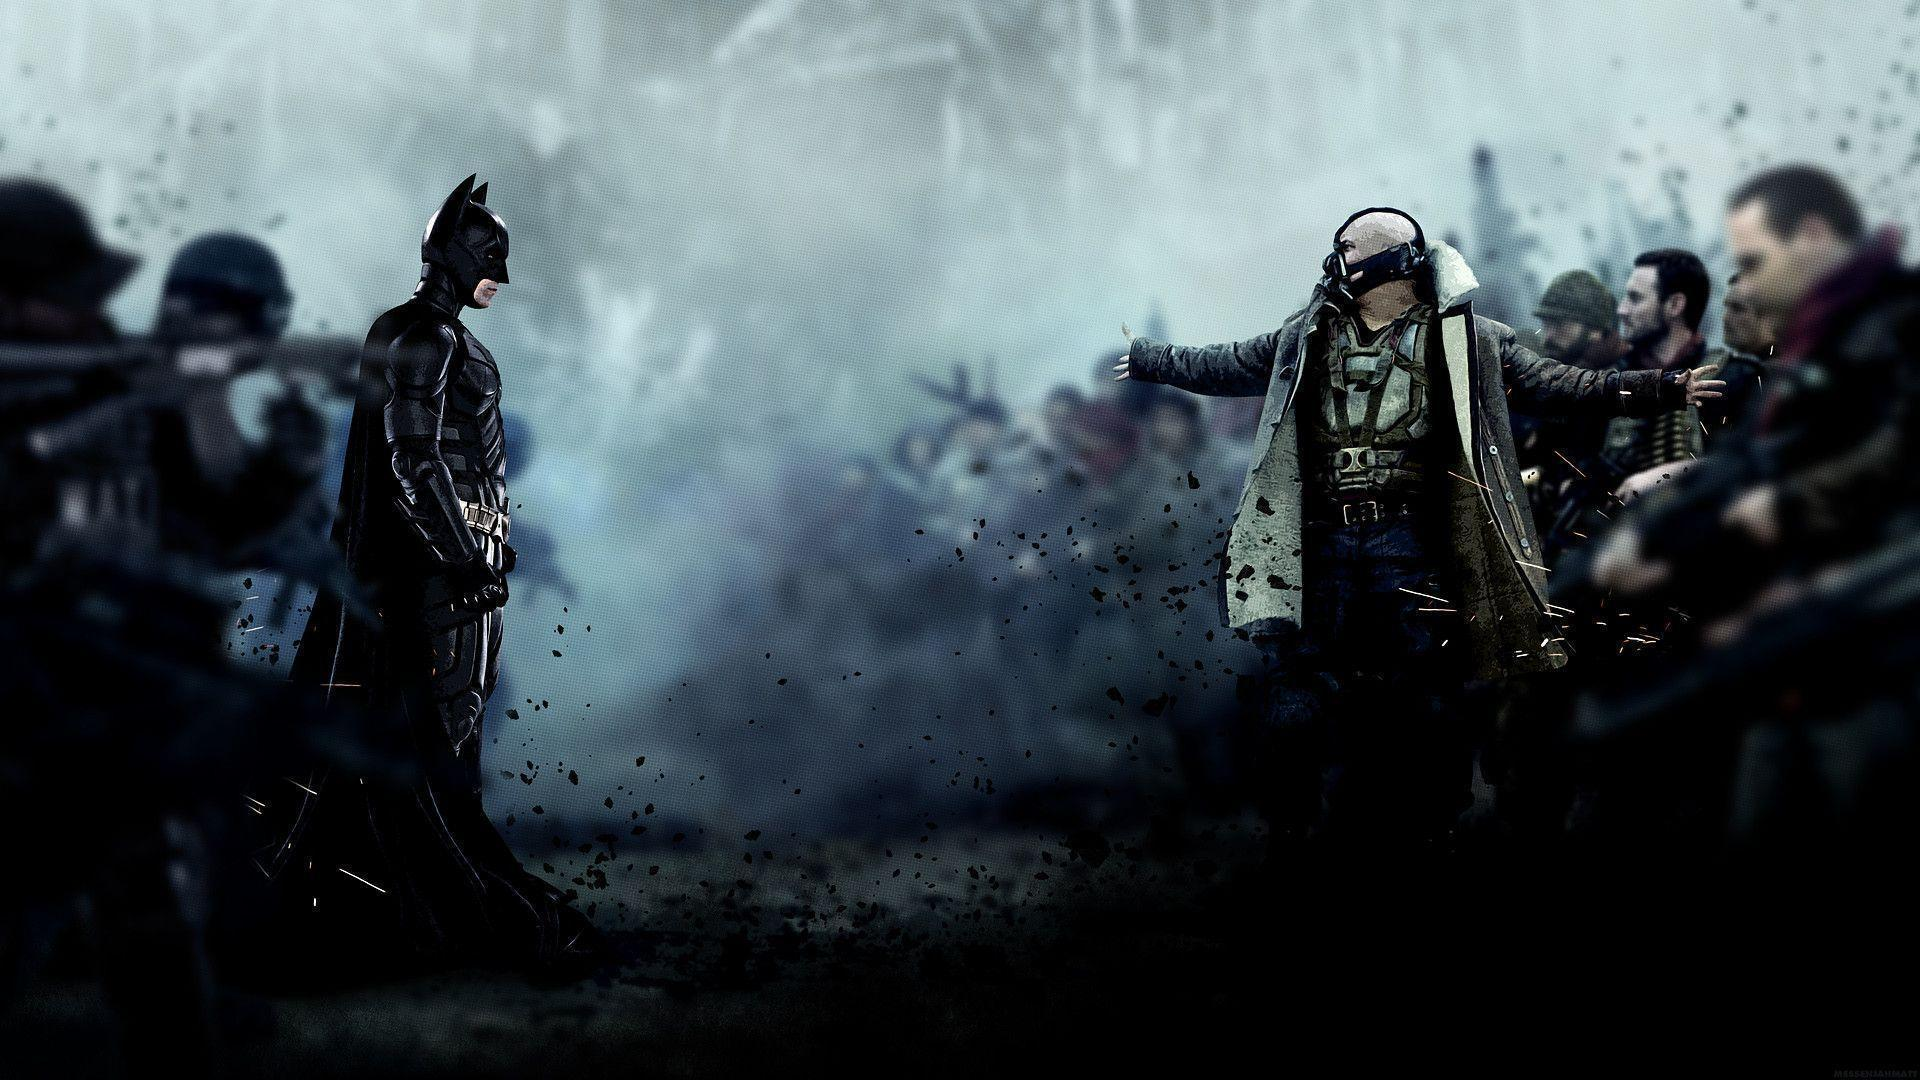 the dark knight rises wallpapers hd 1920x1080 wallpaper cave